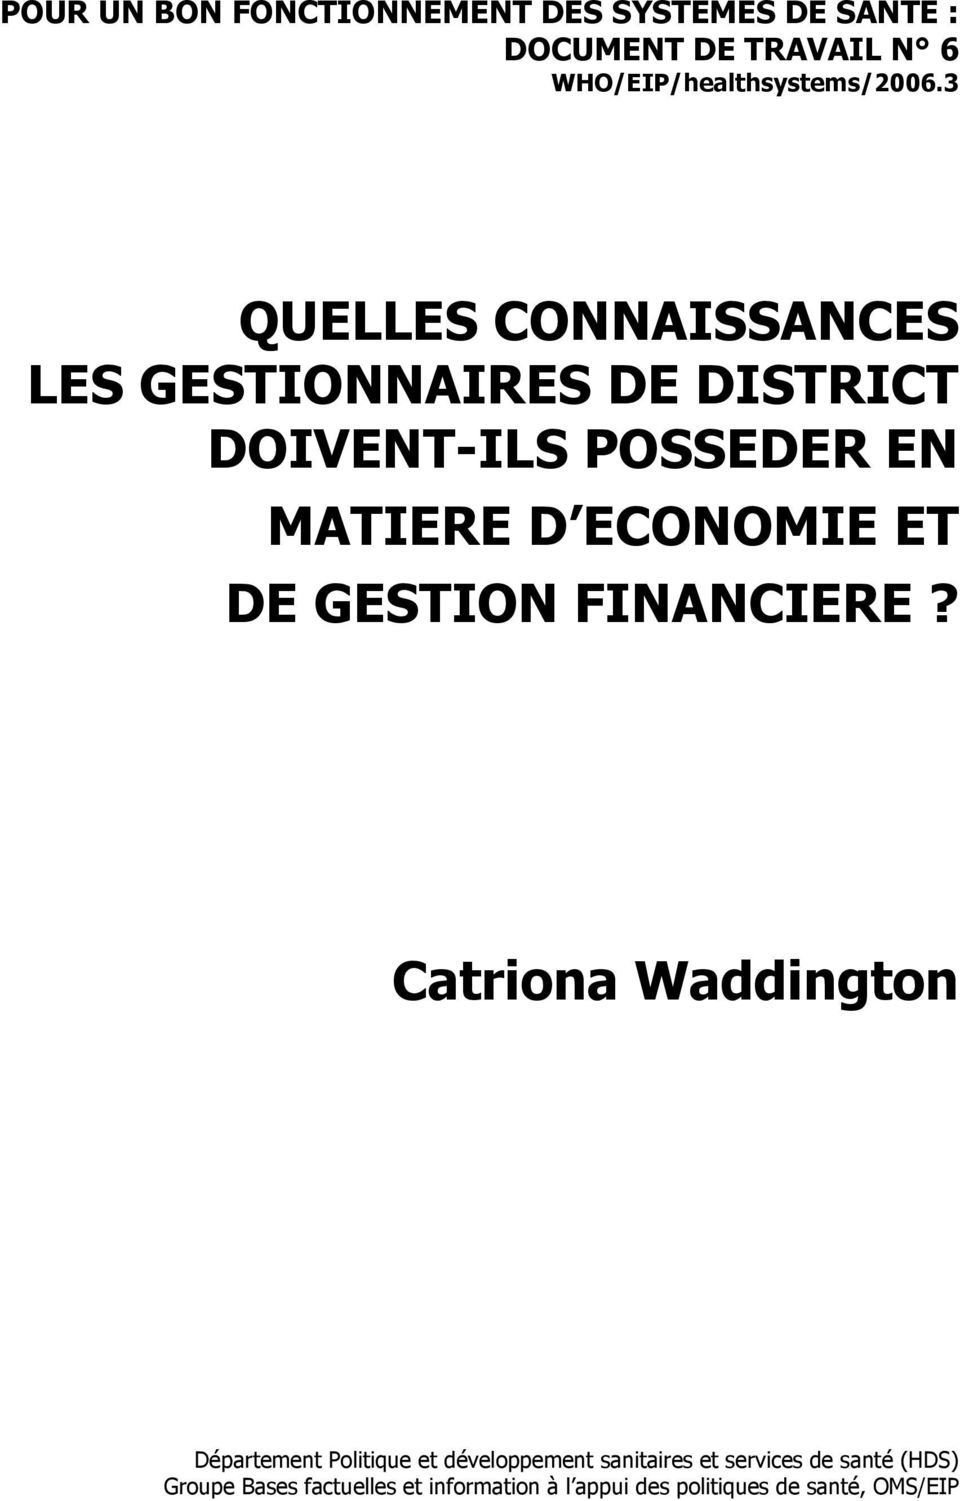 ECONOMIE ET DE GESTION FINANCIERE?